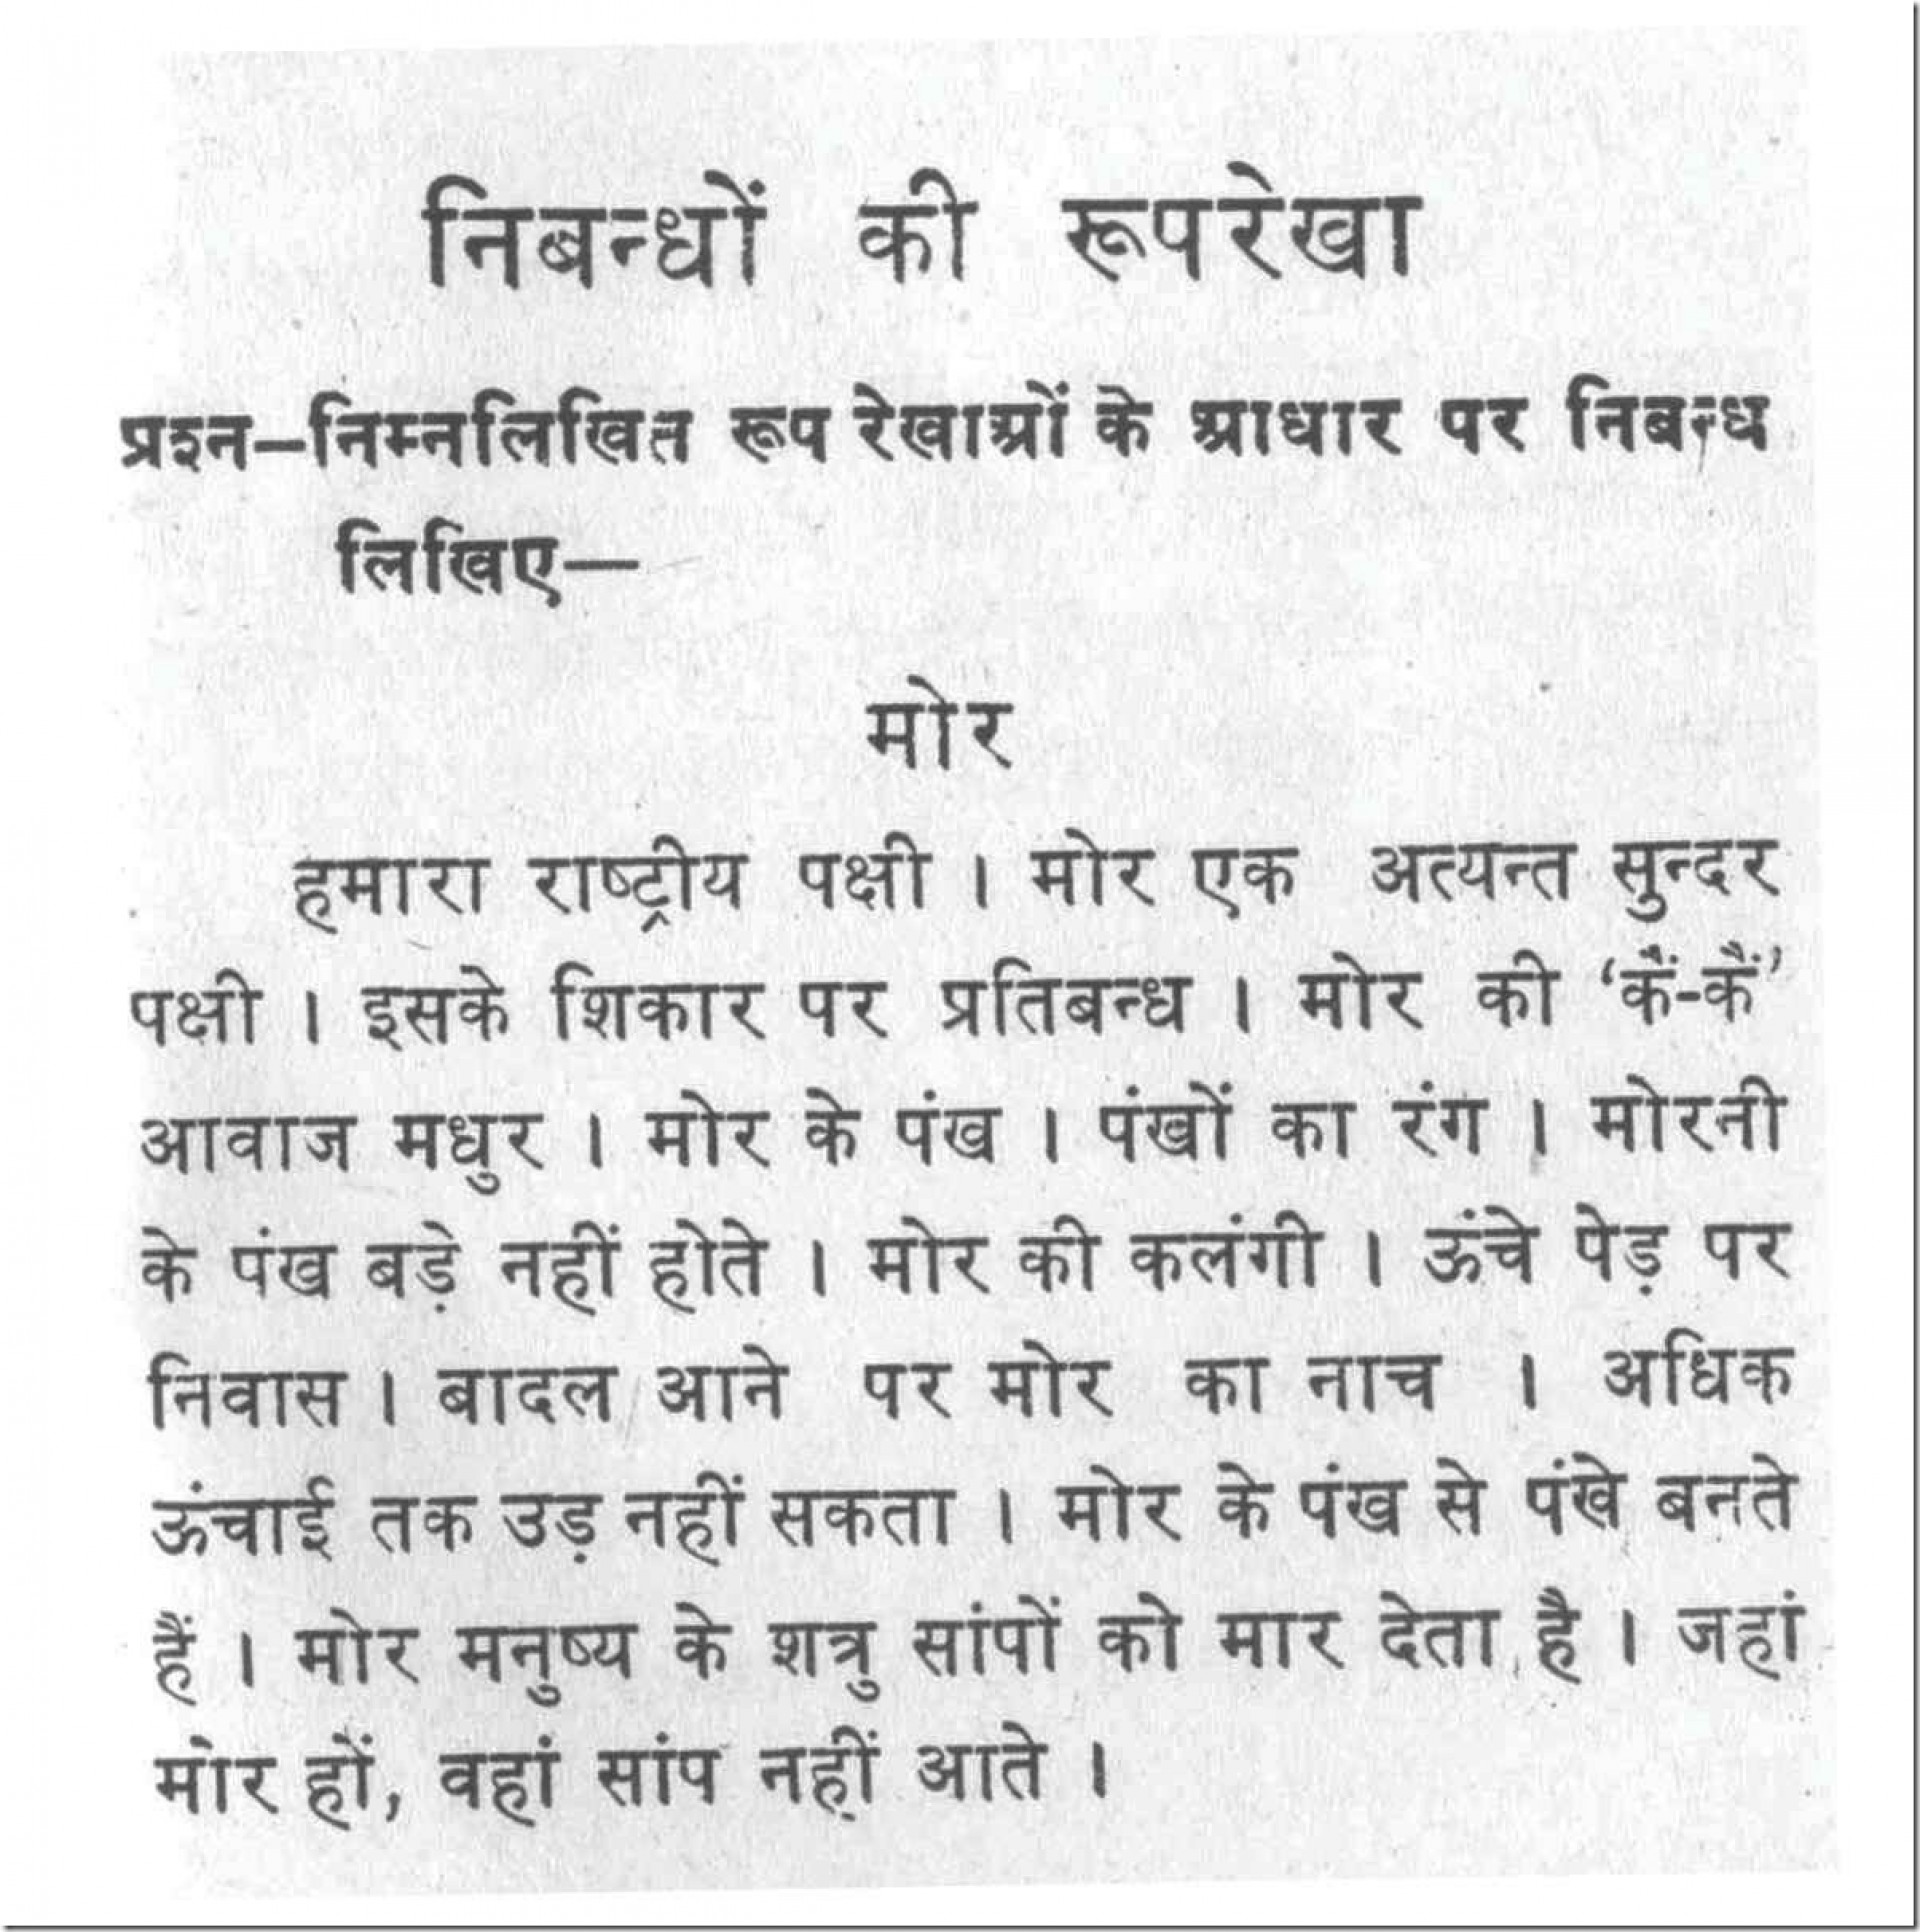 005 Essay On Tiger 10034 Thumb Astounding Shroff Hindi For Class 1 National Animal In 1920